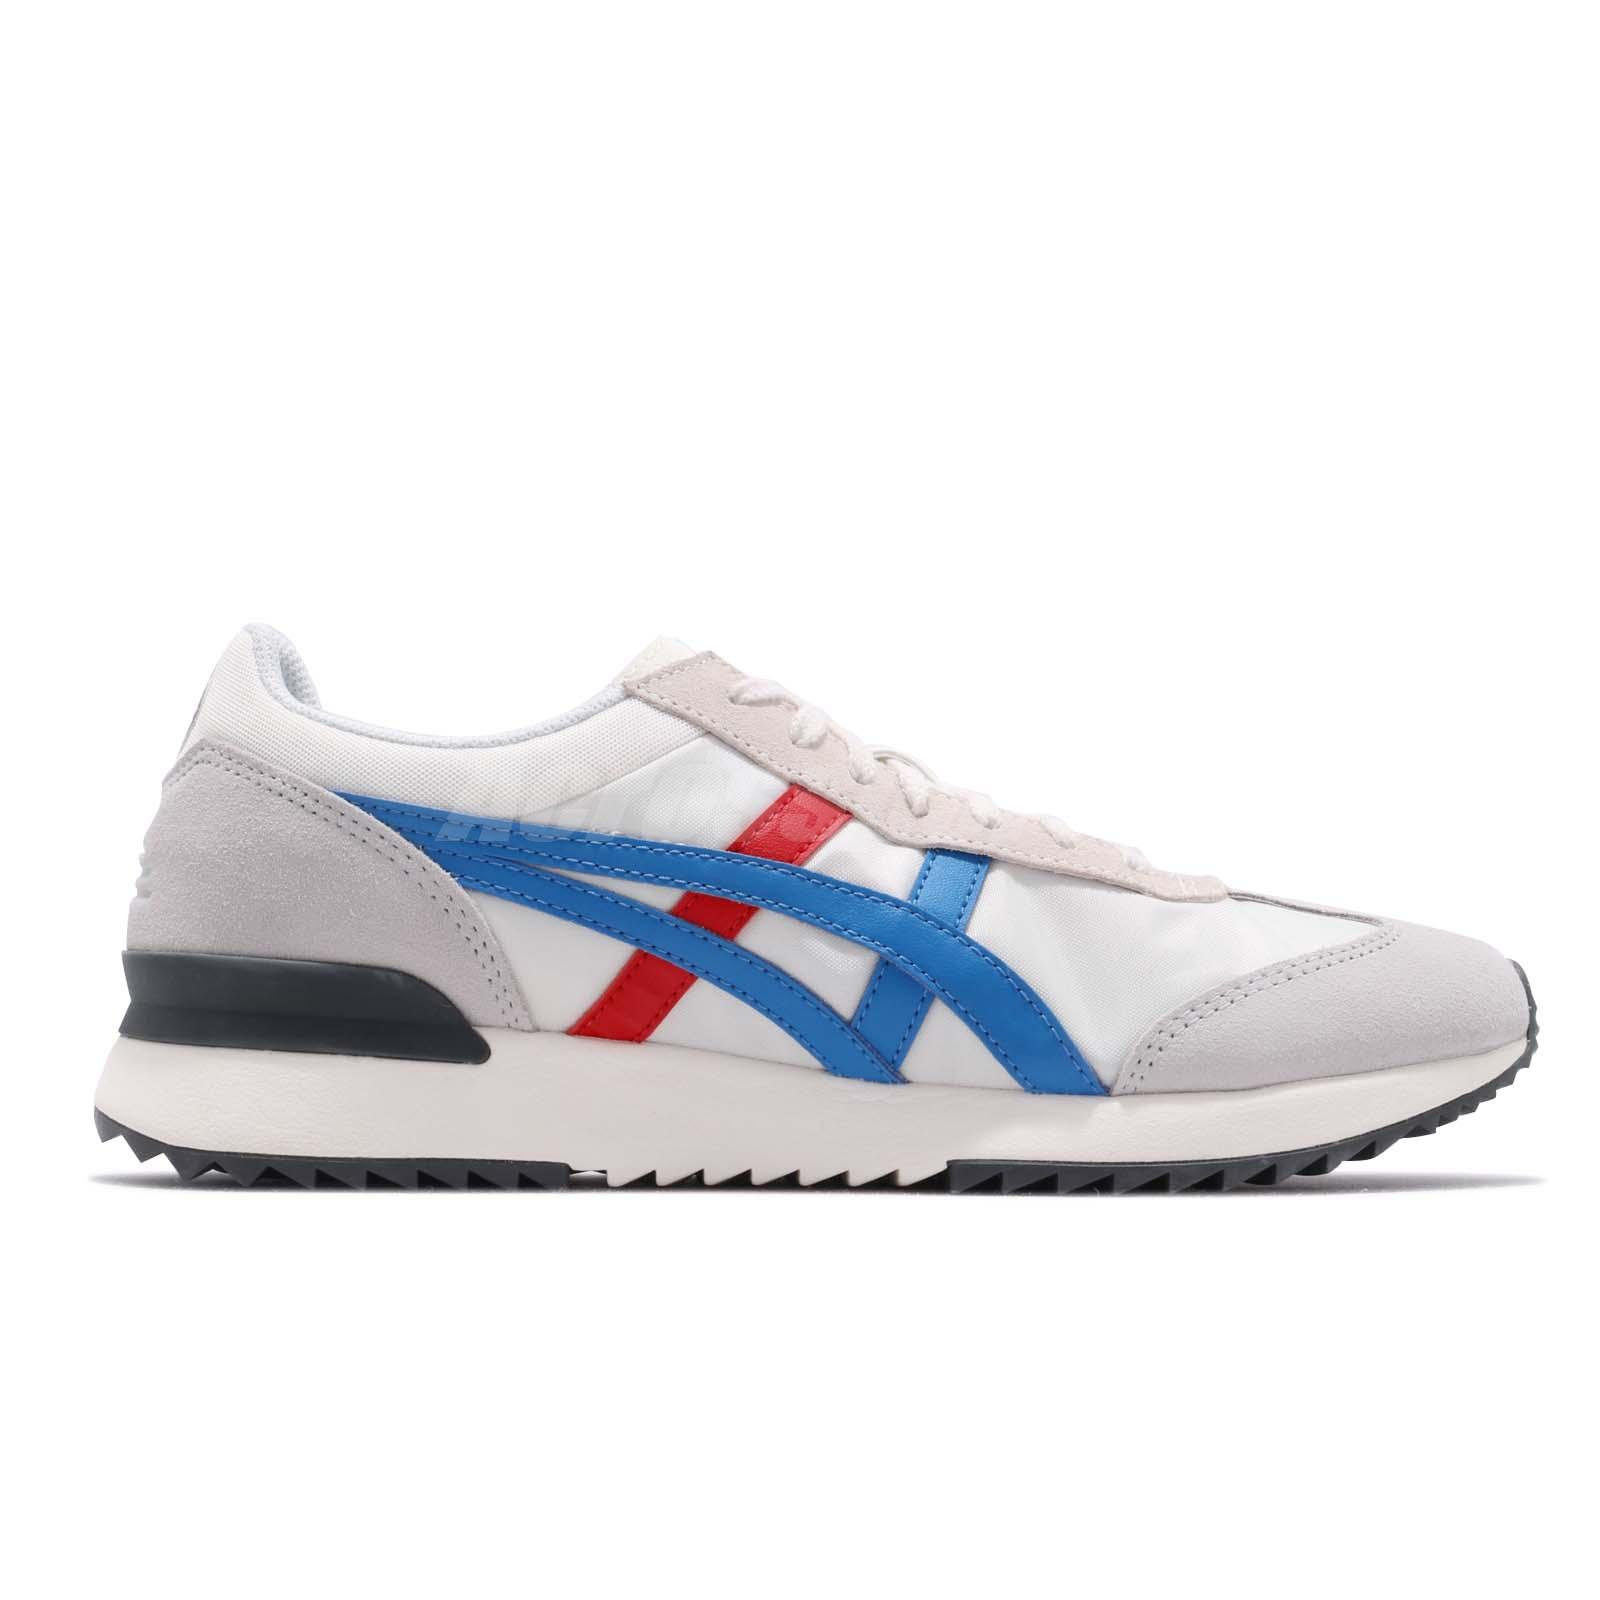 a77ab42ad36cd Asics Onitsuka Tiger California 78 EX Cream Blue Red Men Shoes ...